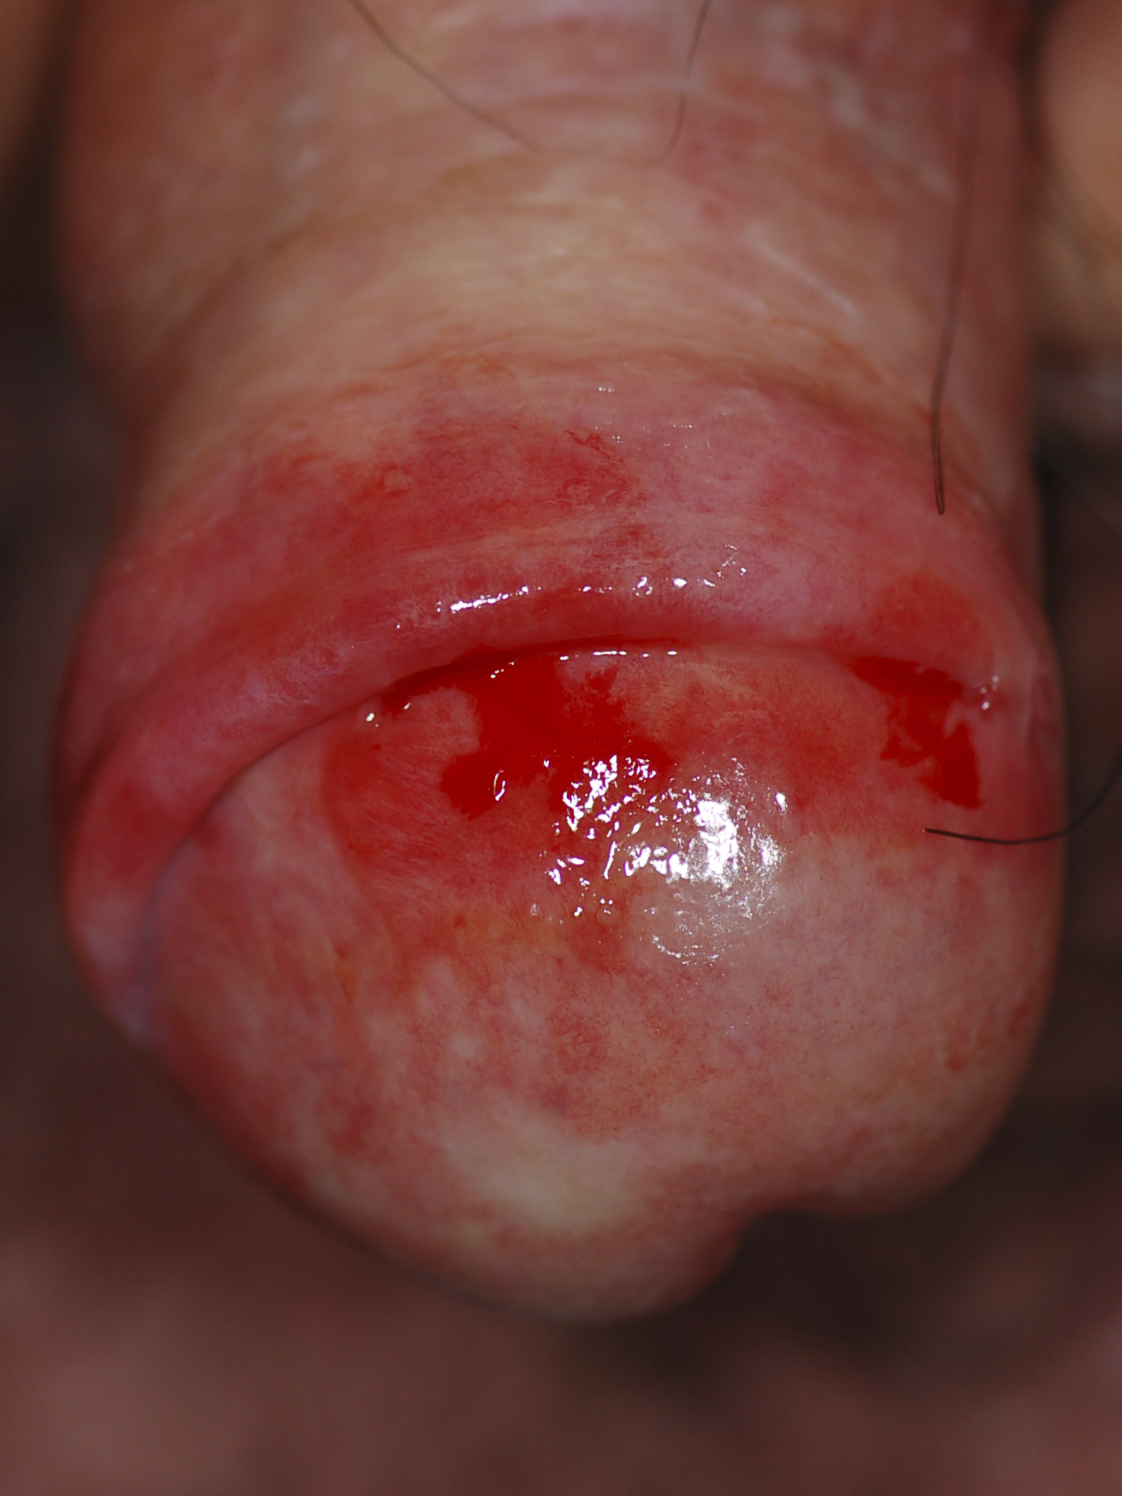 Erosive Area on the Glans Penis, Consistent with the Diagnosis of Lichen Planus